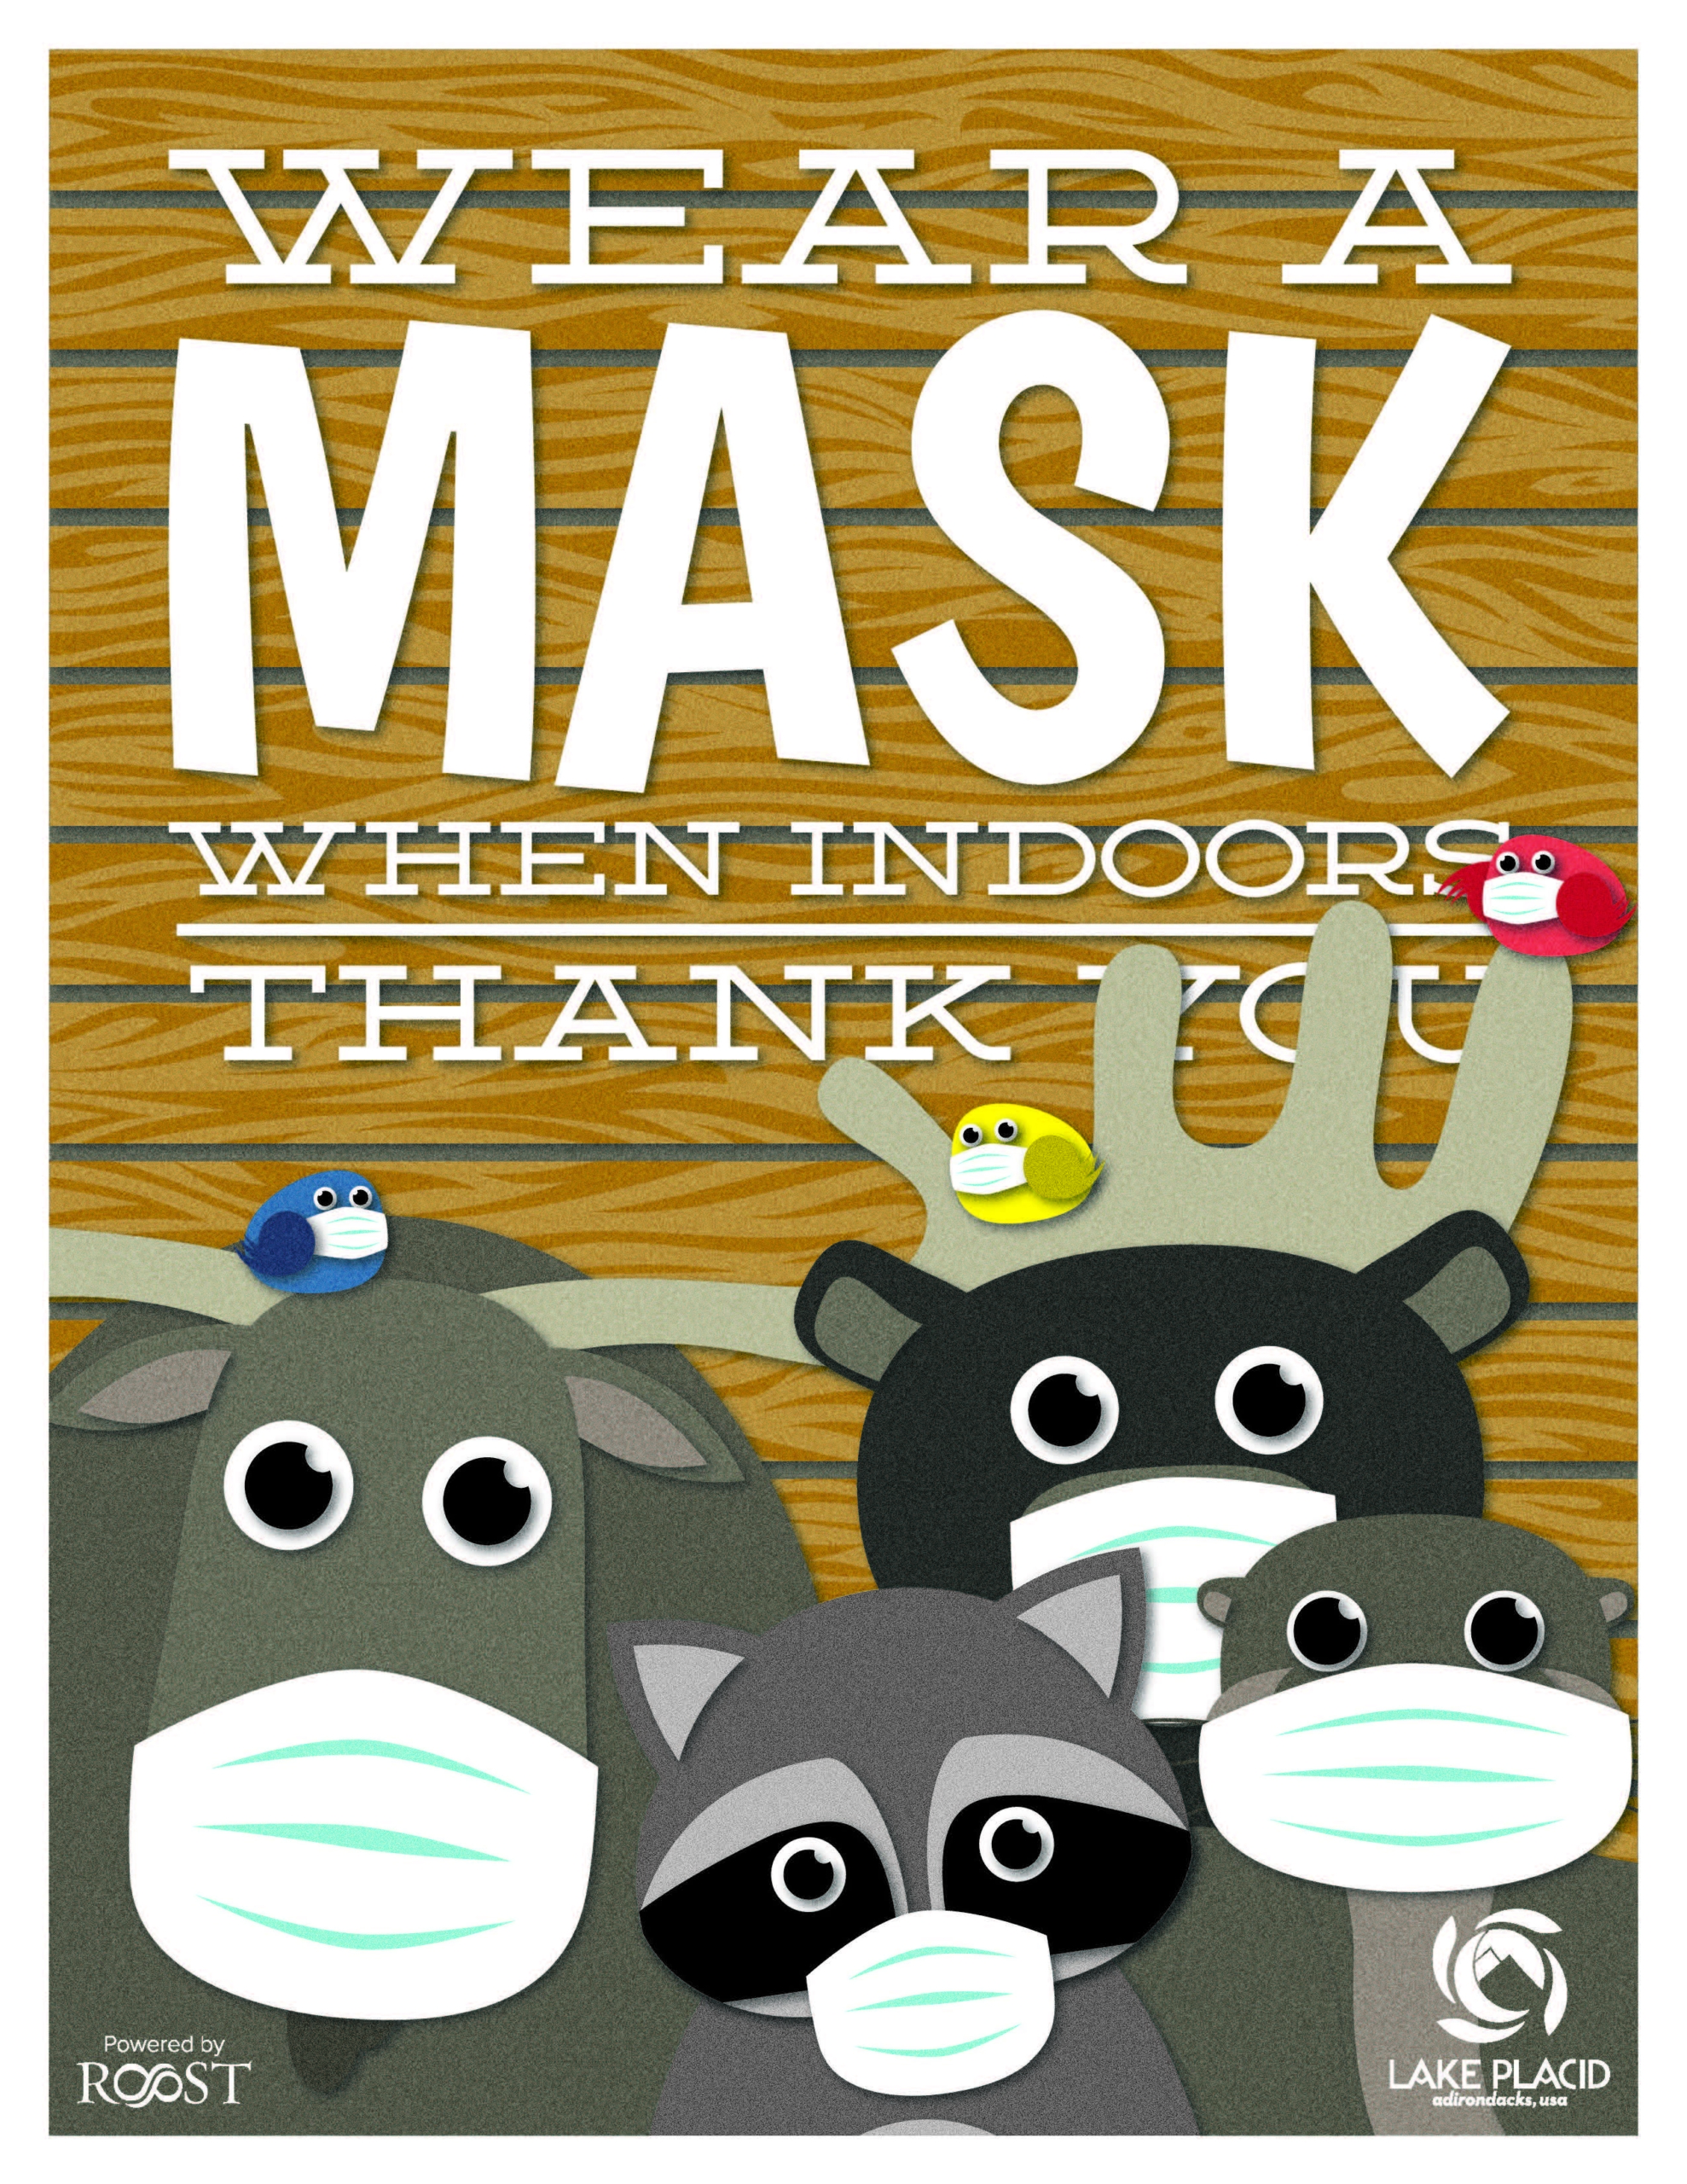 Wear a mask when indoors thank you